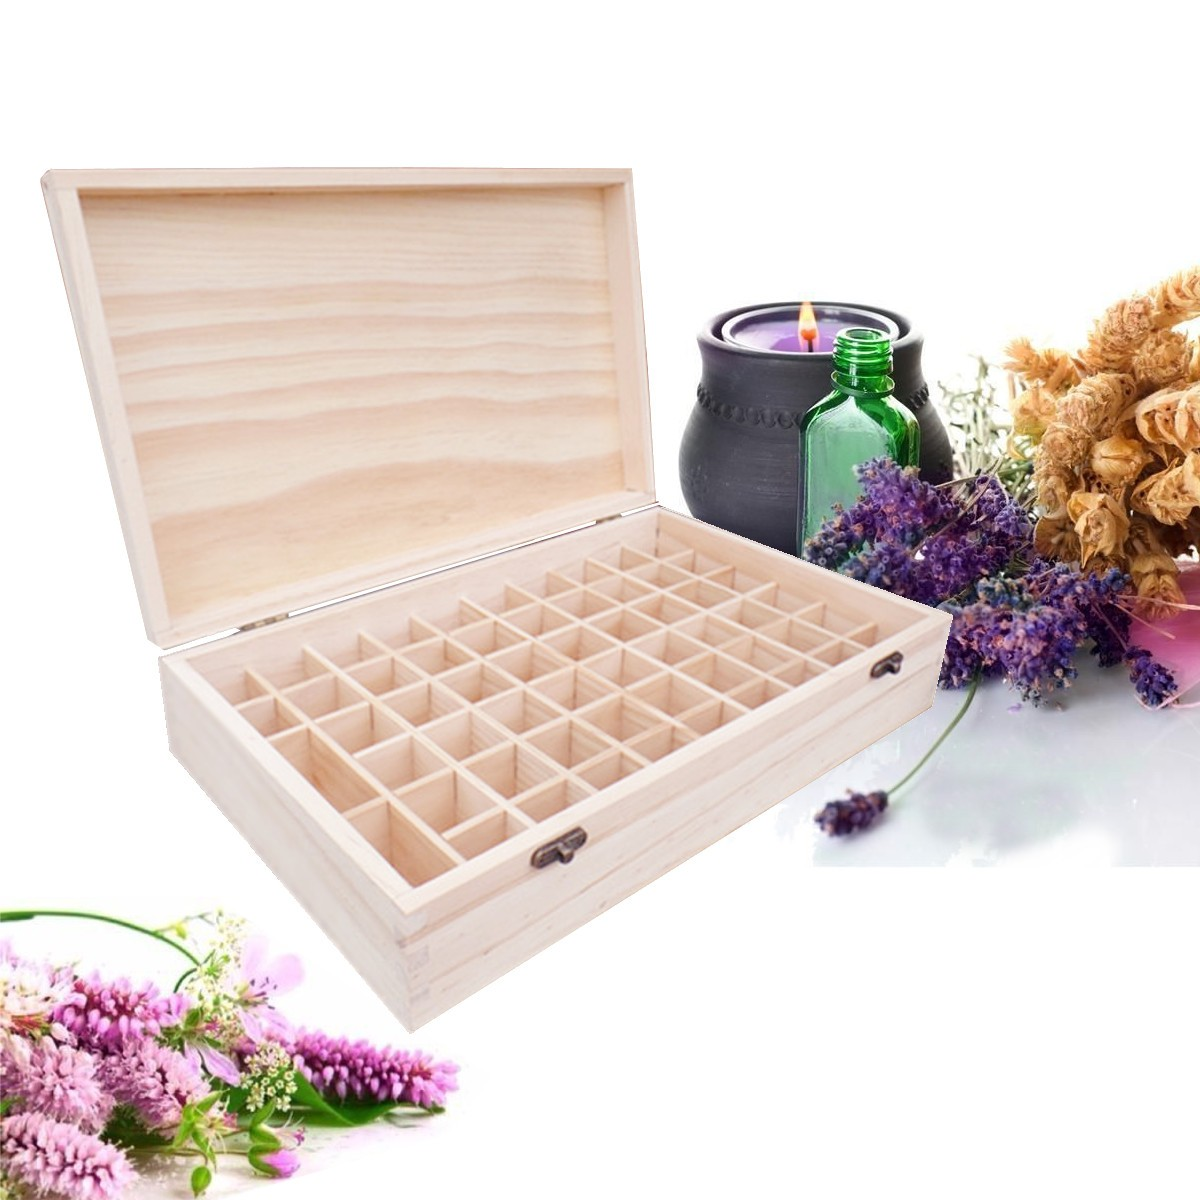 Wooden Essential Oils Storage Box 58 Holes Aromatherapy Natural Pine Wood Handmade Without Paint Accessories